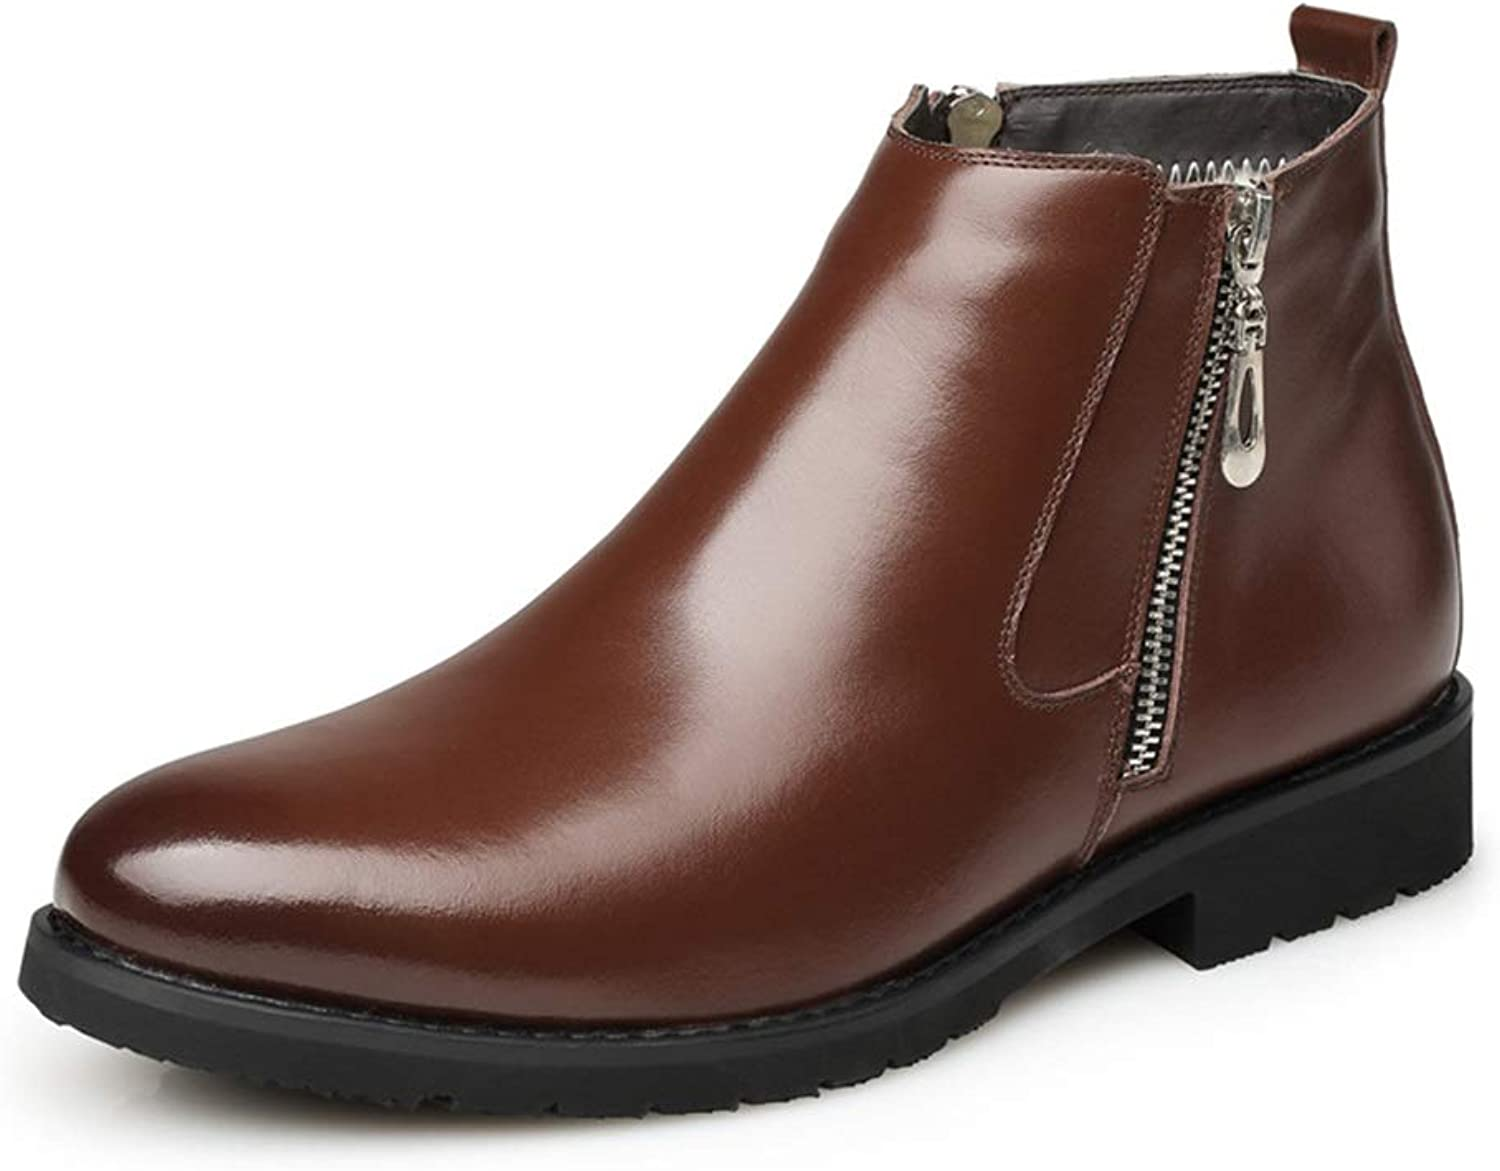 ZHRUI Side Zip Genuine Leather Boots for Men Soft Sole Non Slip Comfort Boots (color   Brown, Size   UK 6.5)